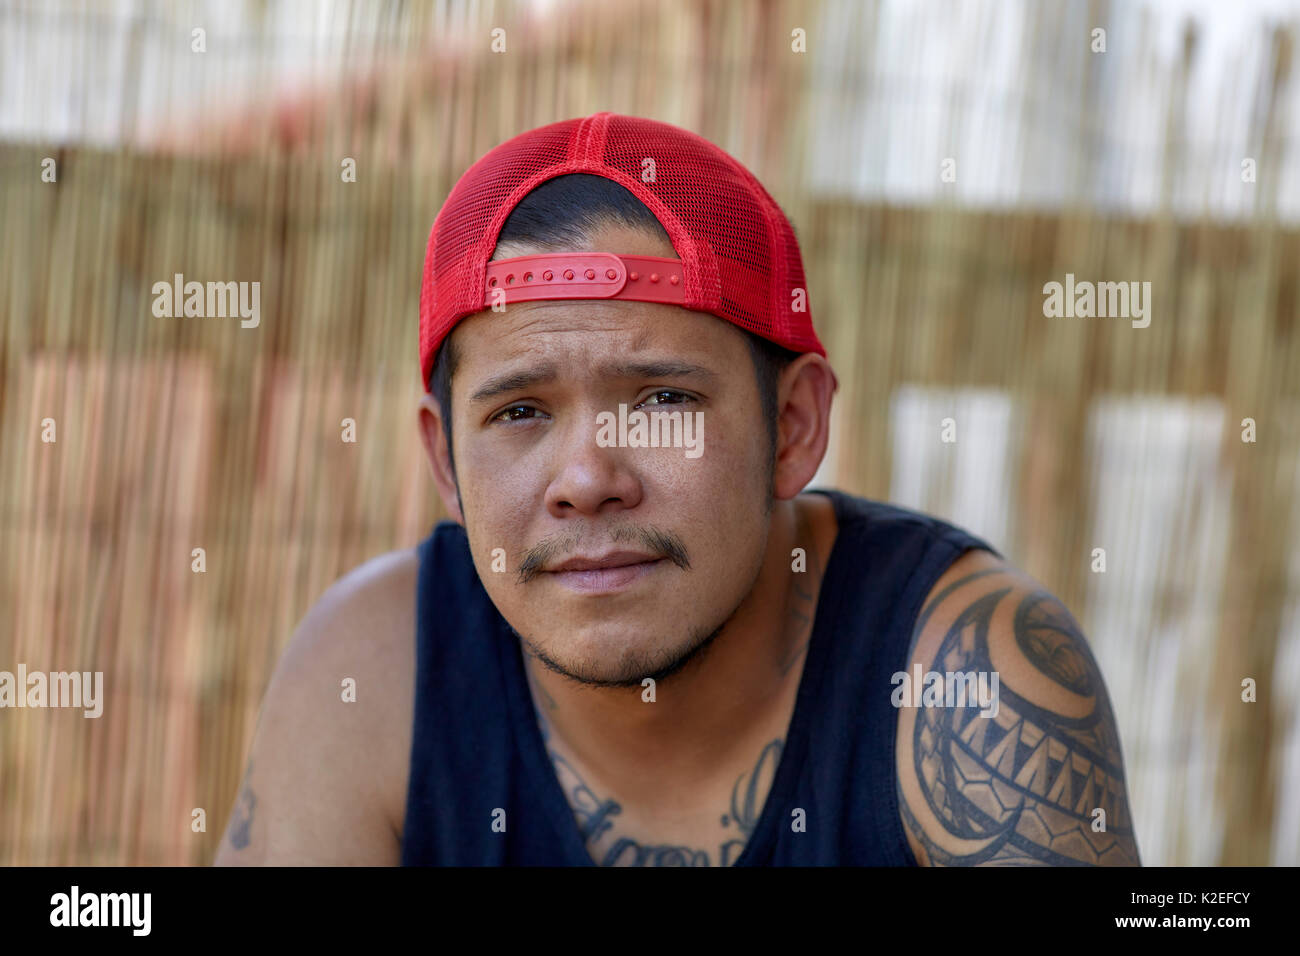 Young Adult Man Wearing A Baseball Cap Backwards With Tattoos On His Stock Photo Alamy